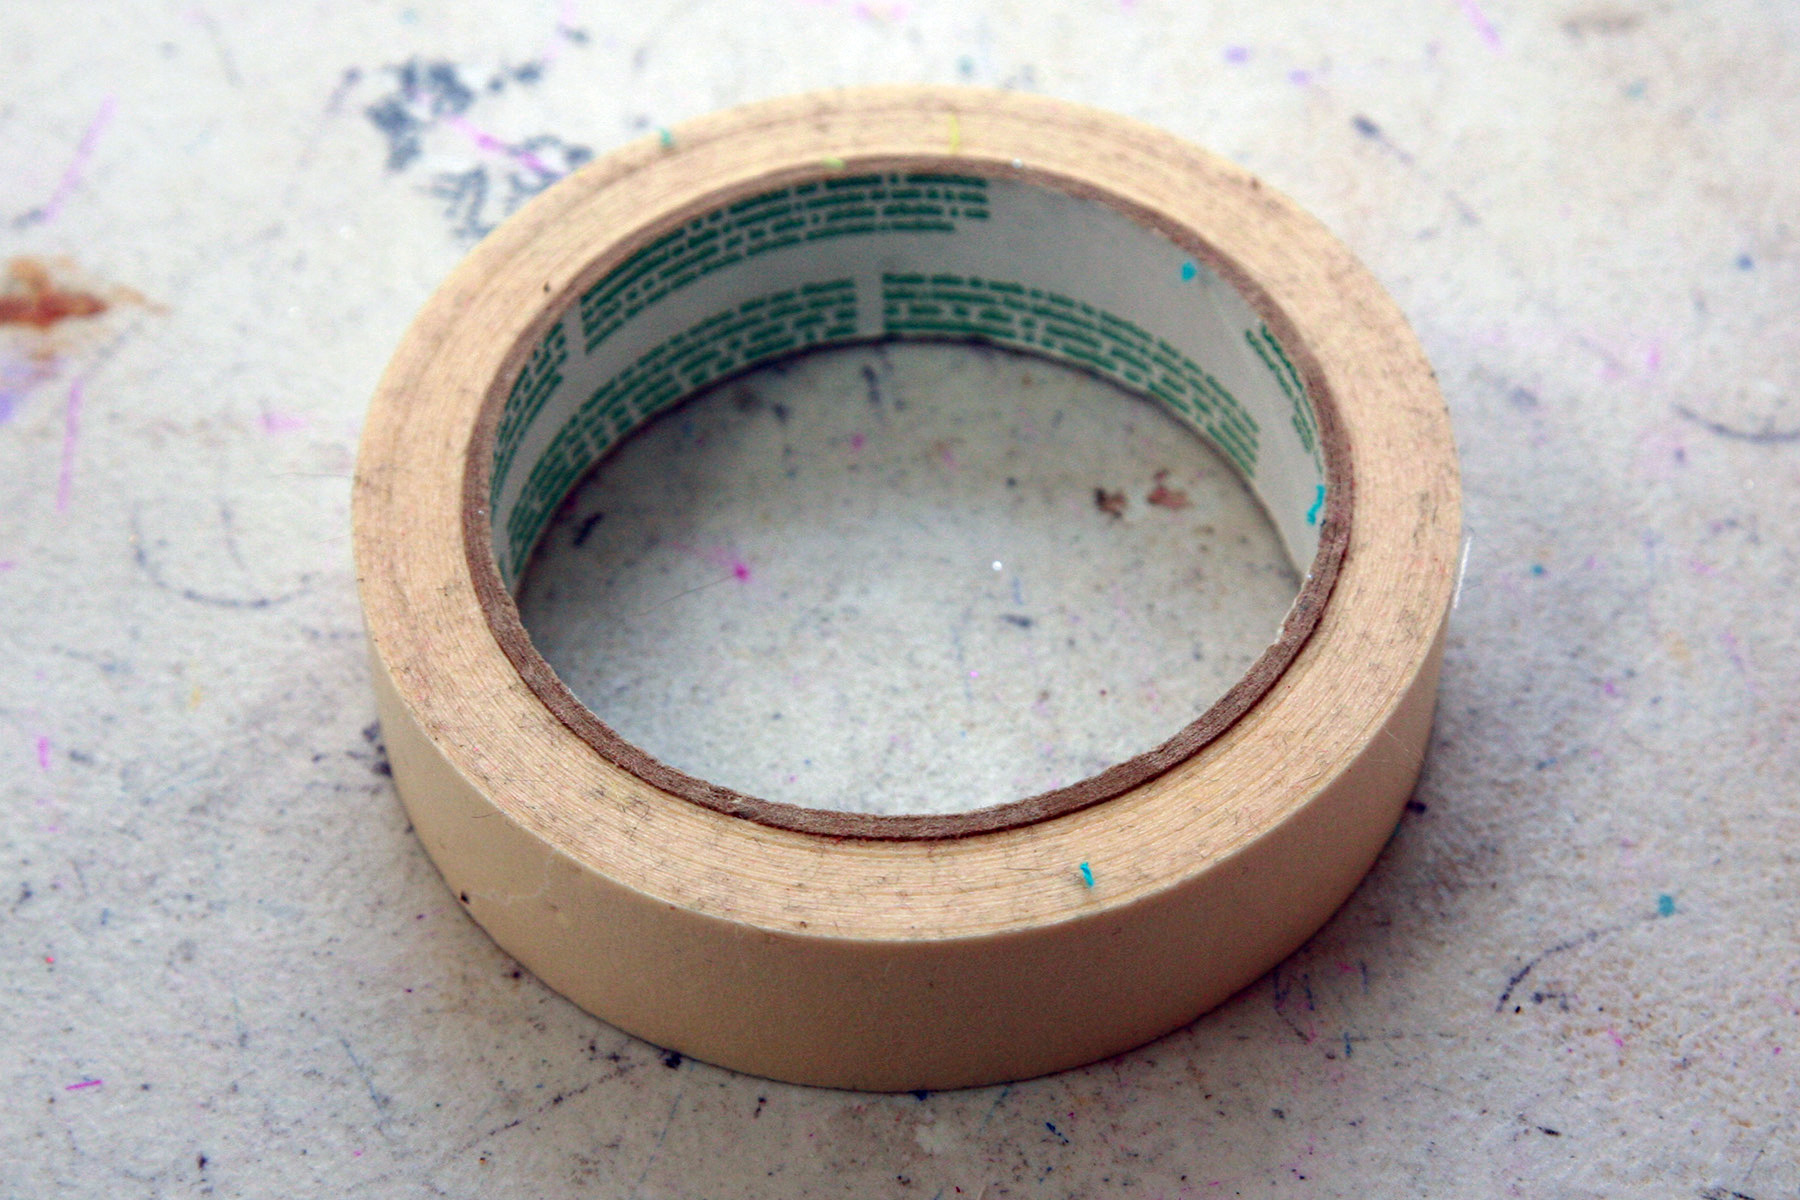 A single roll of masking tape on a work table.